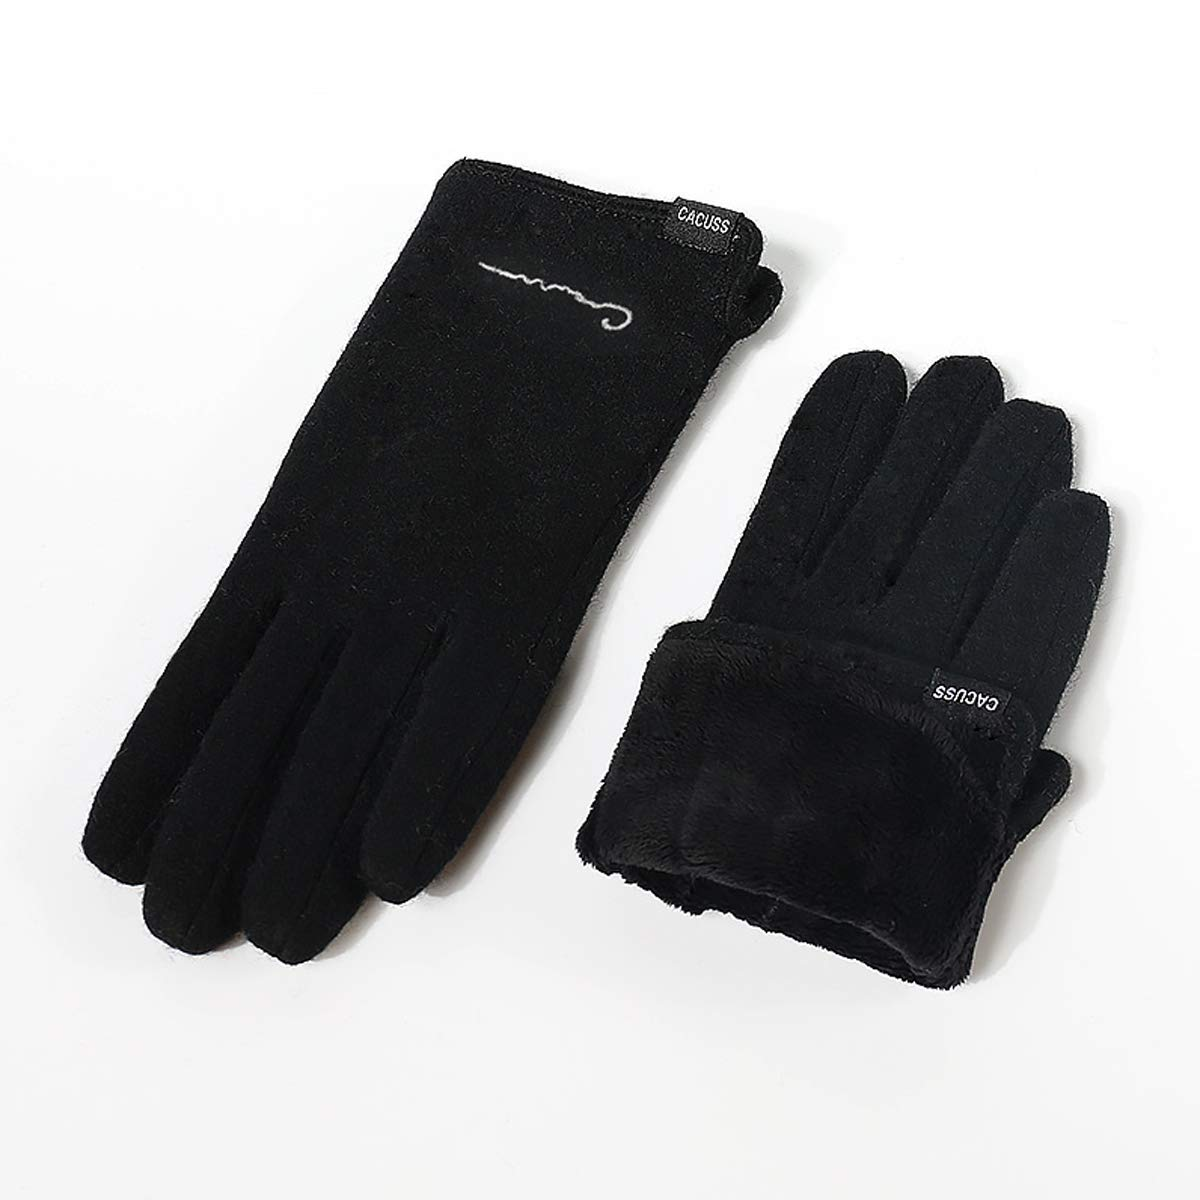 CACUSS Gloves Women Autumn and Winter Gloves for Women Solid Color Warm Touch Screen Gloves Riding Windproof Ladies Finger Gloves (Black) by CACUSS (Image #6)